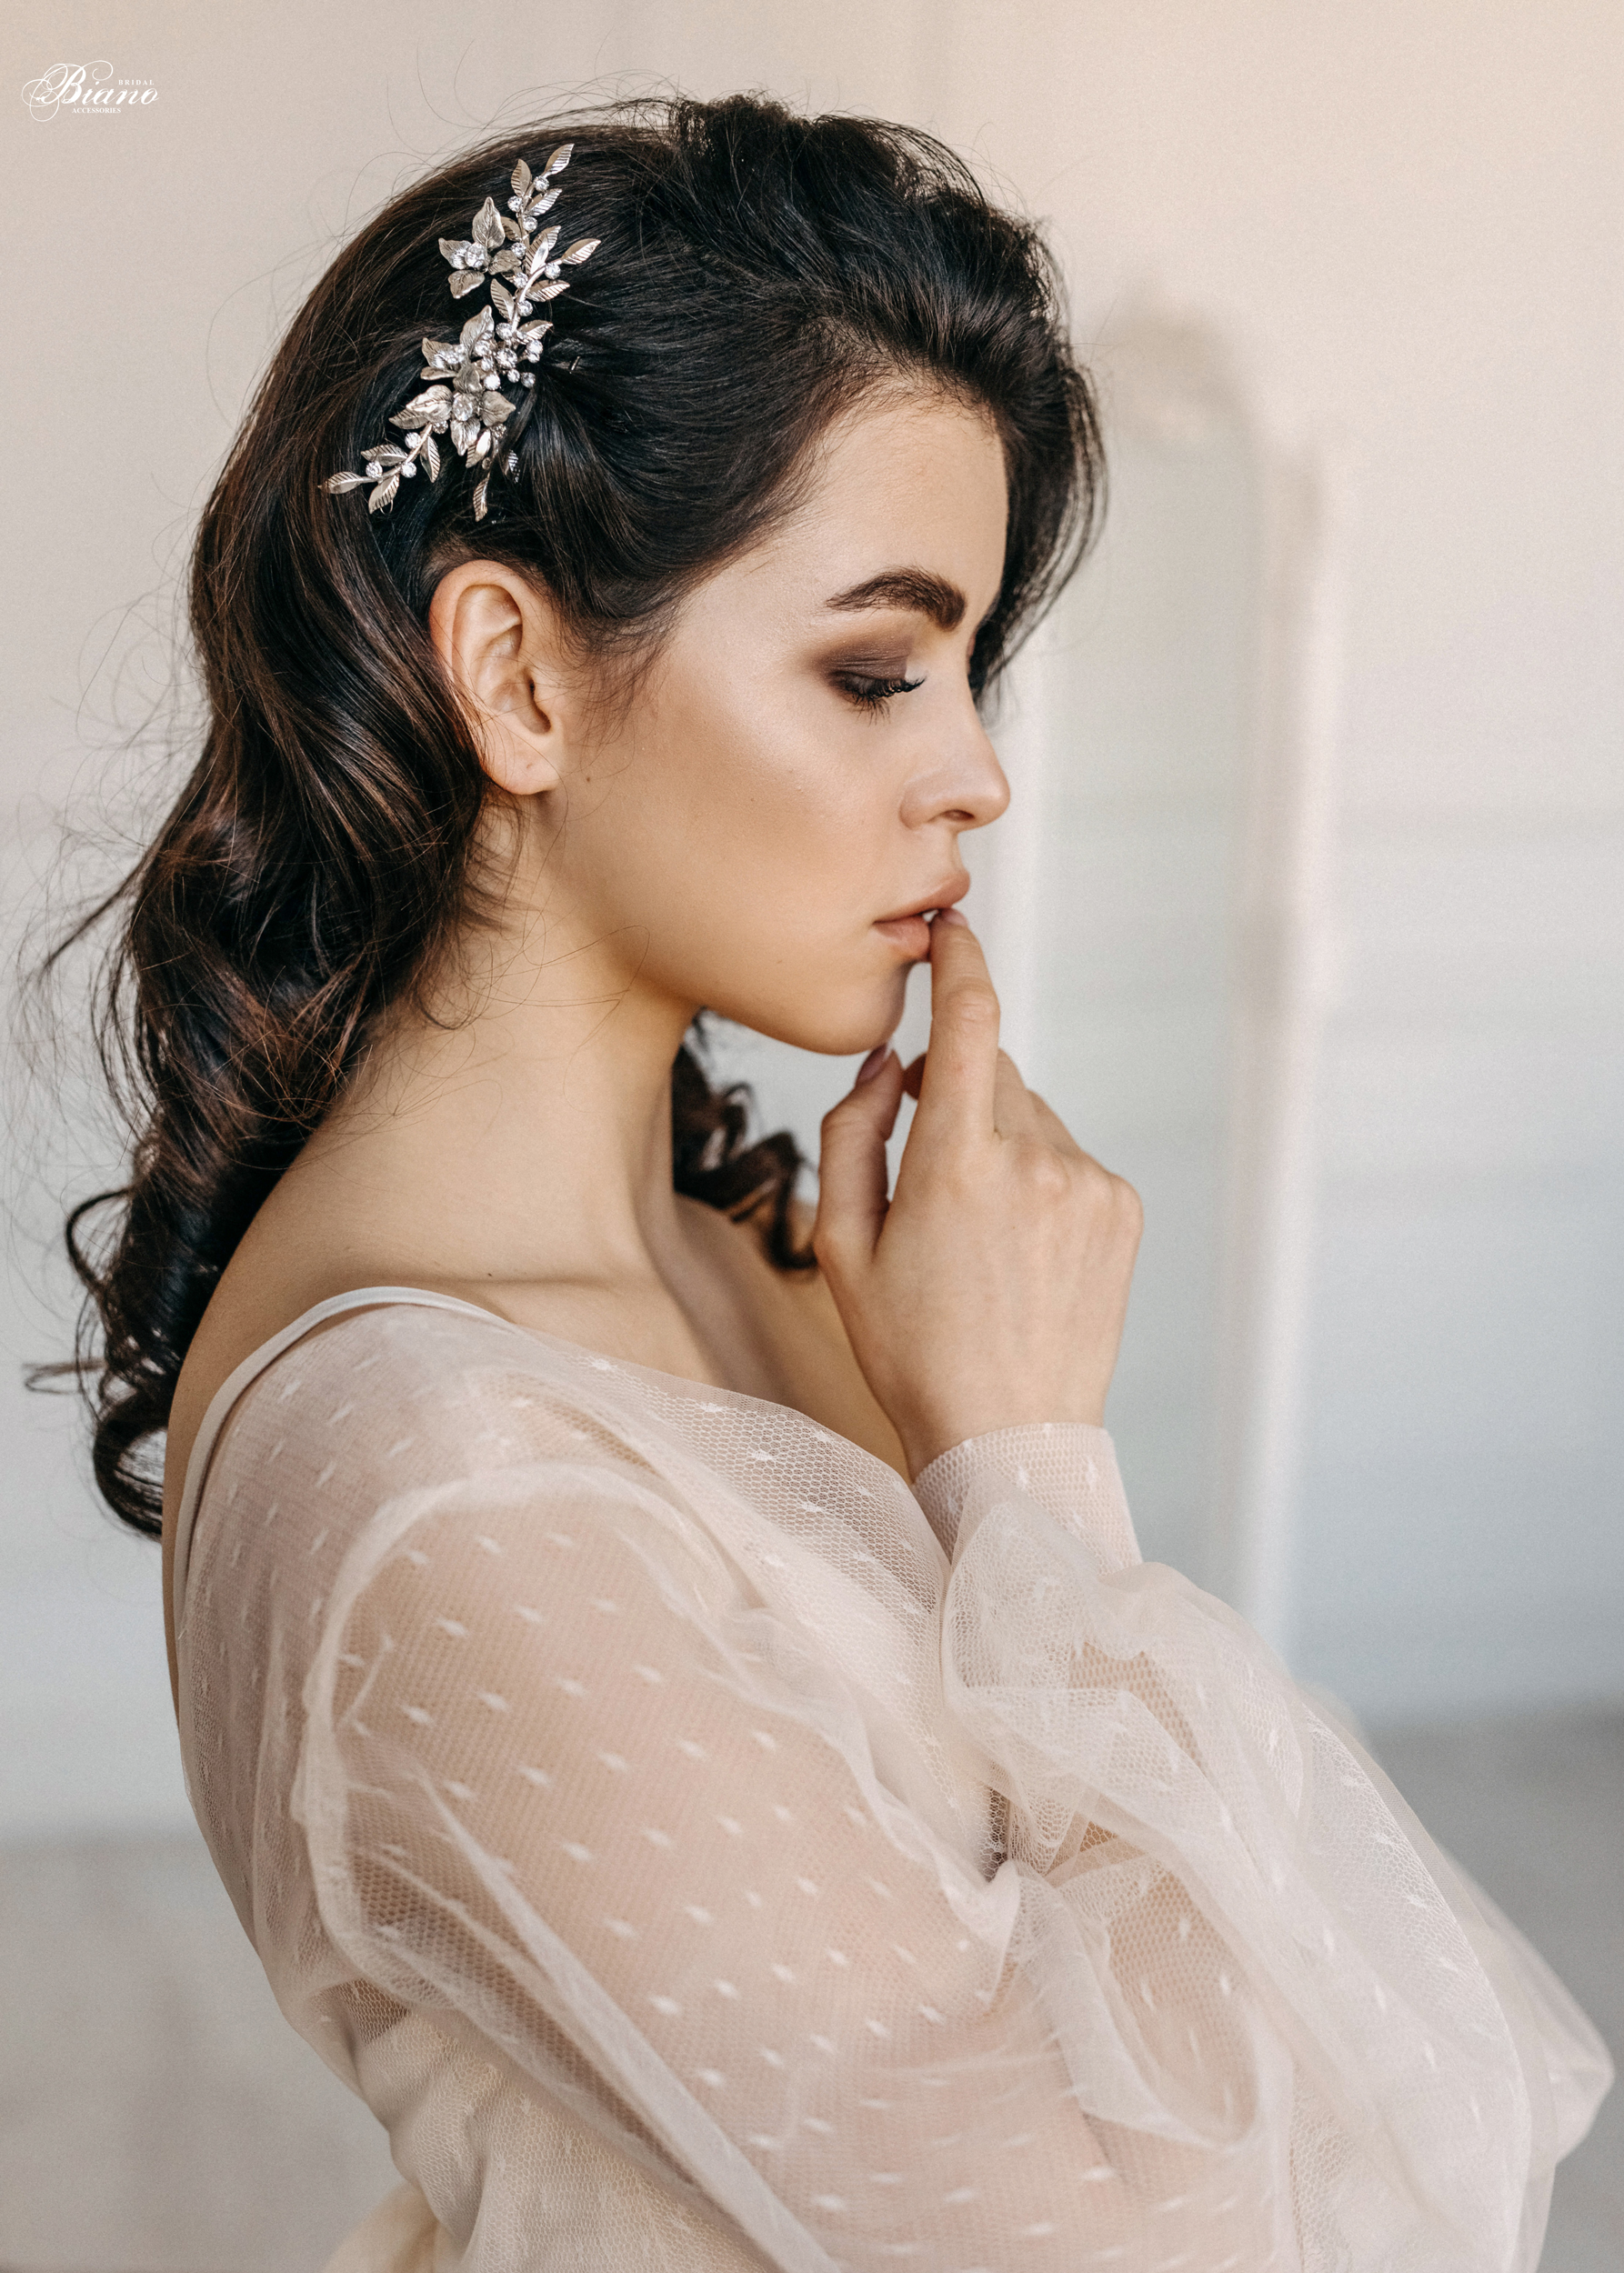 Find your perfect Bridal Hair Comb - Handmade in SwitzerlandUnique DesignPossibility to Rush OrdersFree Shipping WorldwideCustomisable OrdersFast response on your questions